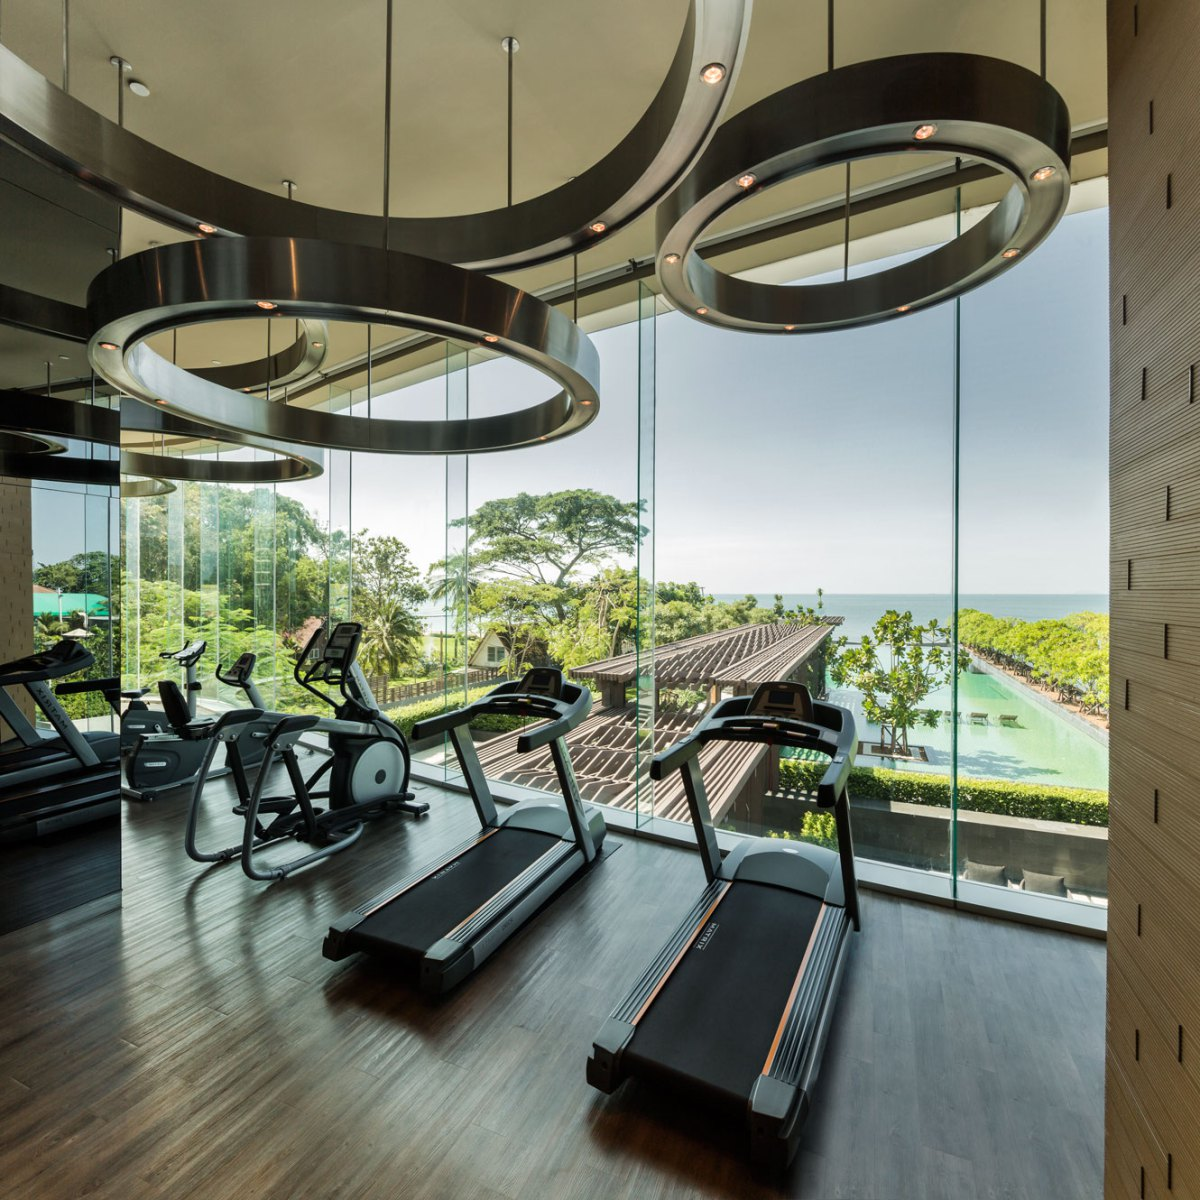 Home Gym Design Ideas: Luxury Beachfront Condo Development In Pattaya